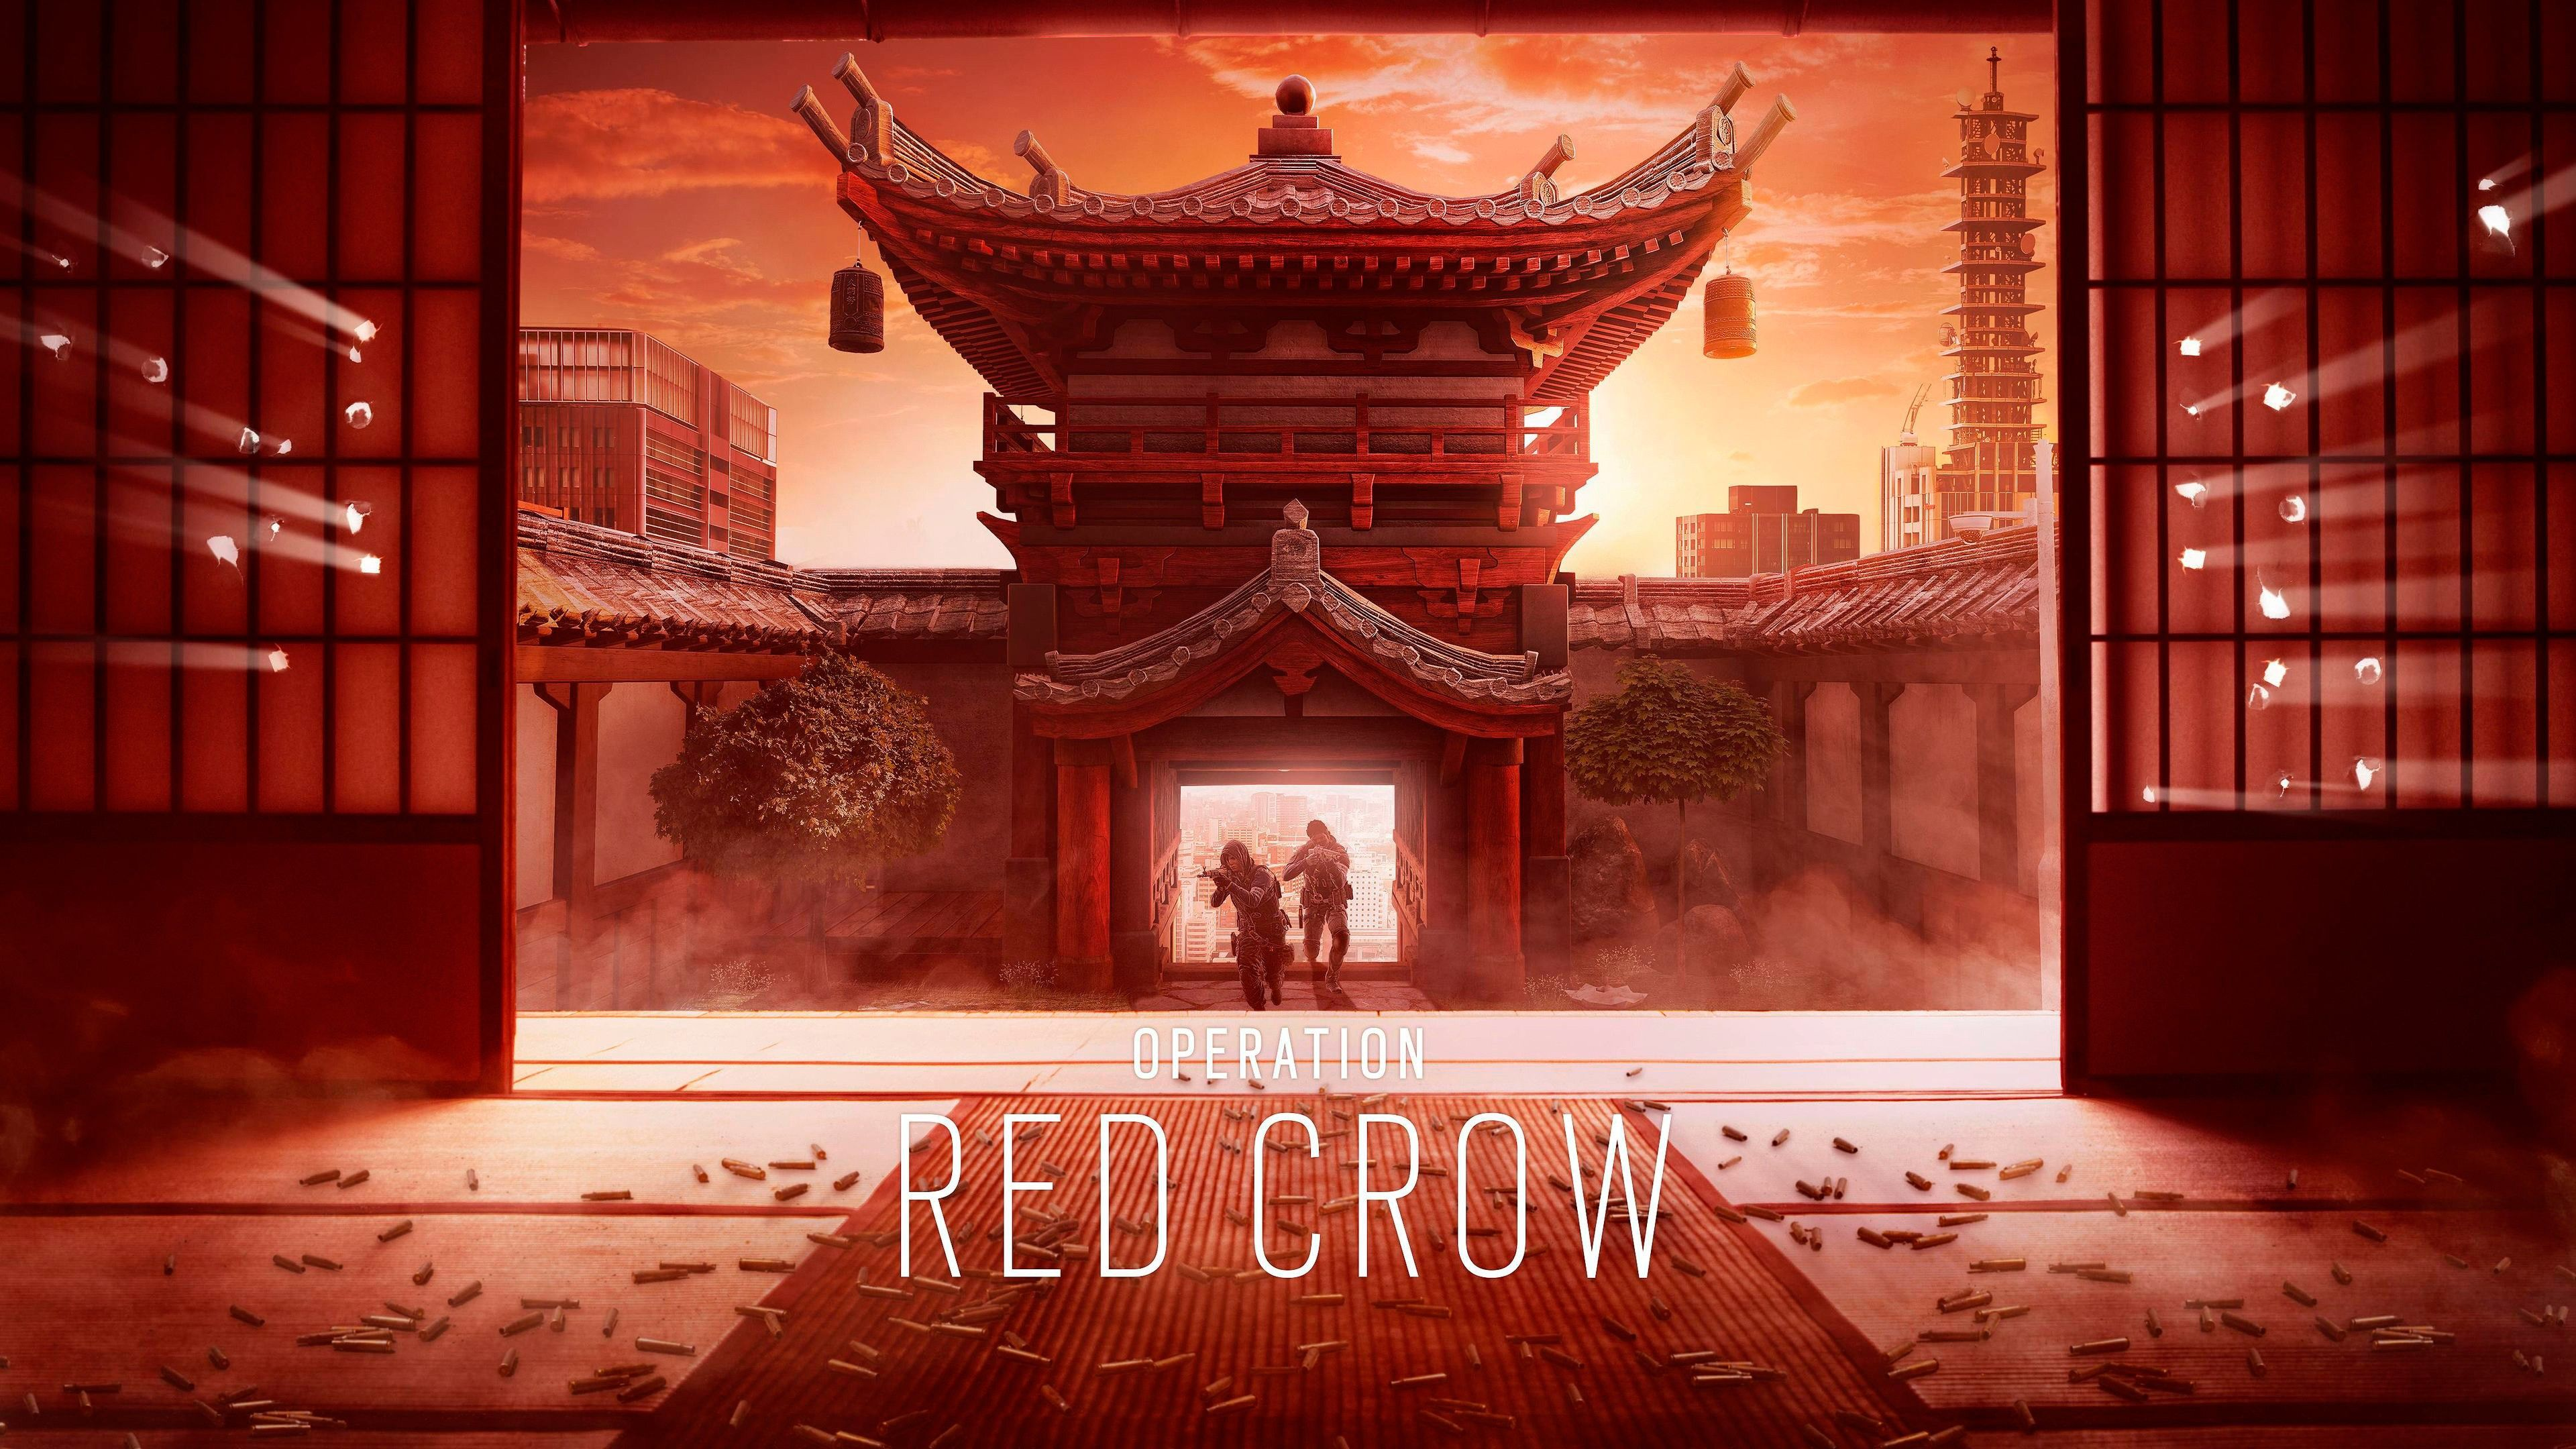 Operation red crow wallpaper 4k computer red crow tom - Operation rainbow download ...